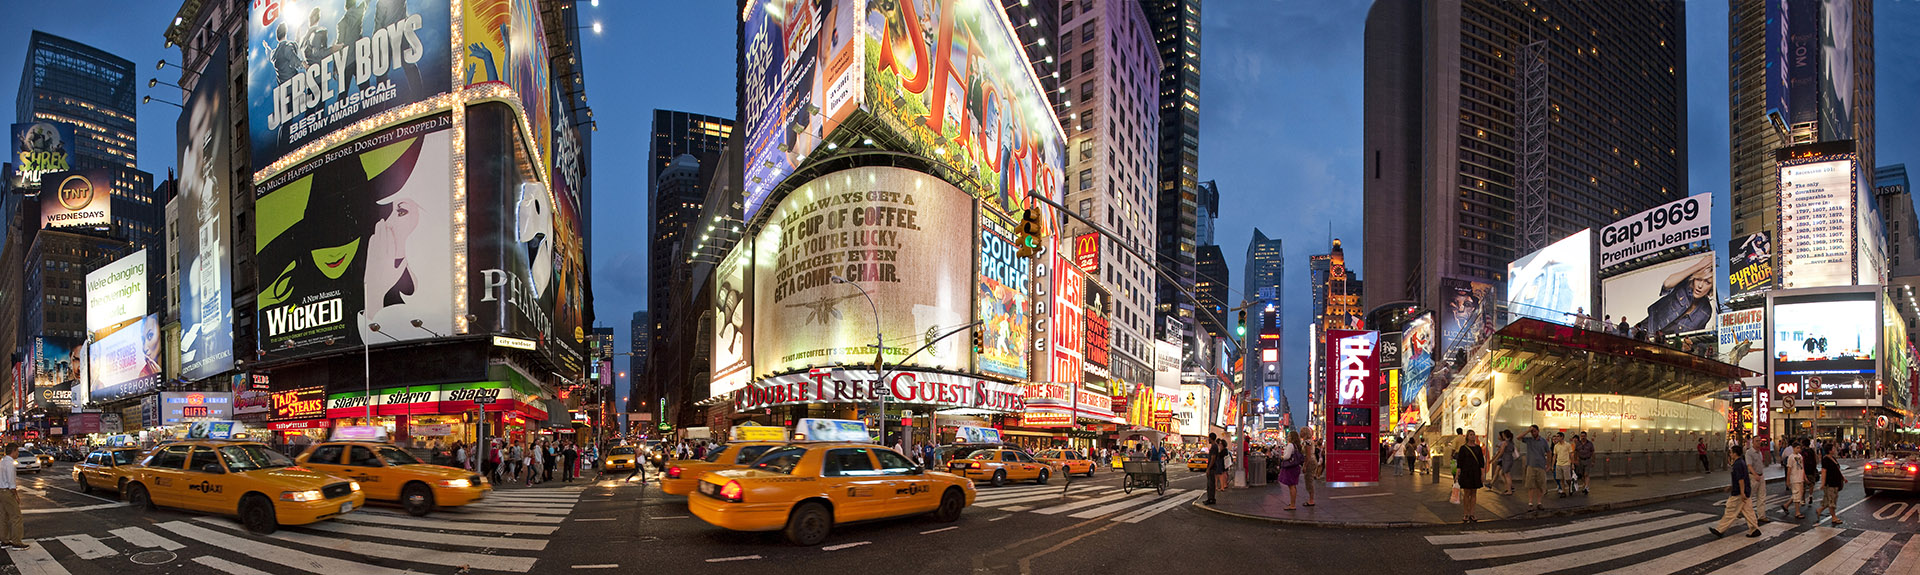 Panoramic photo of Times Square